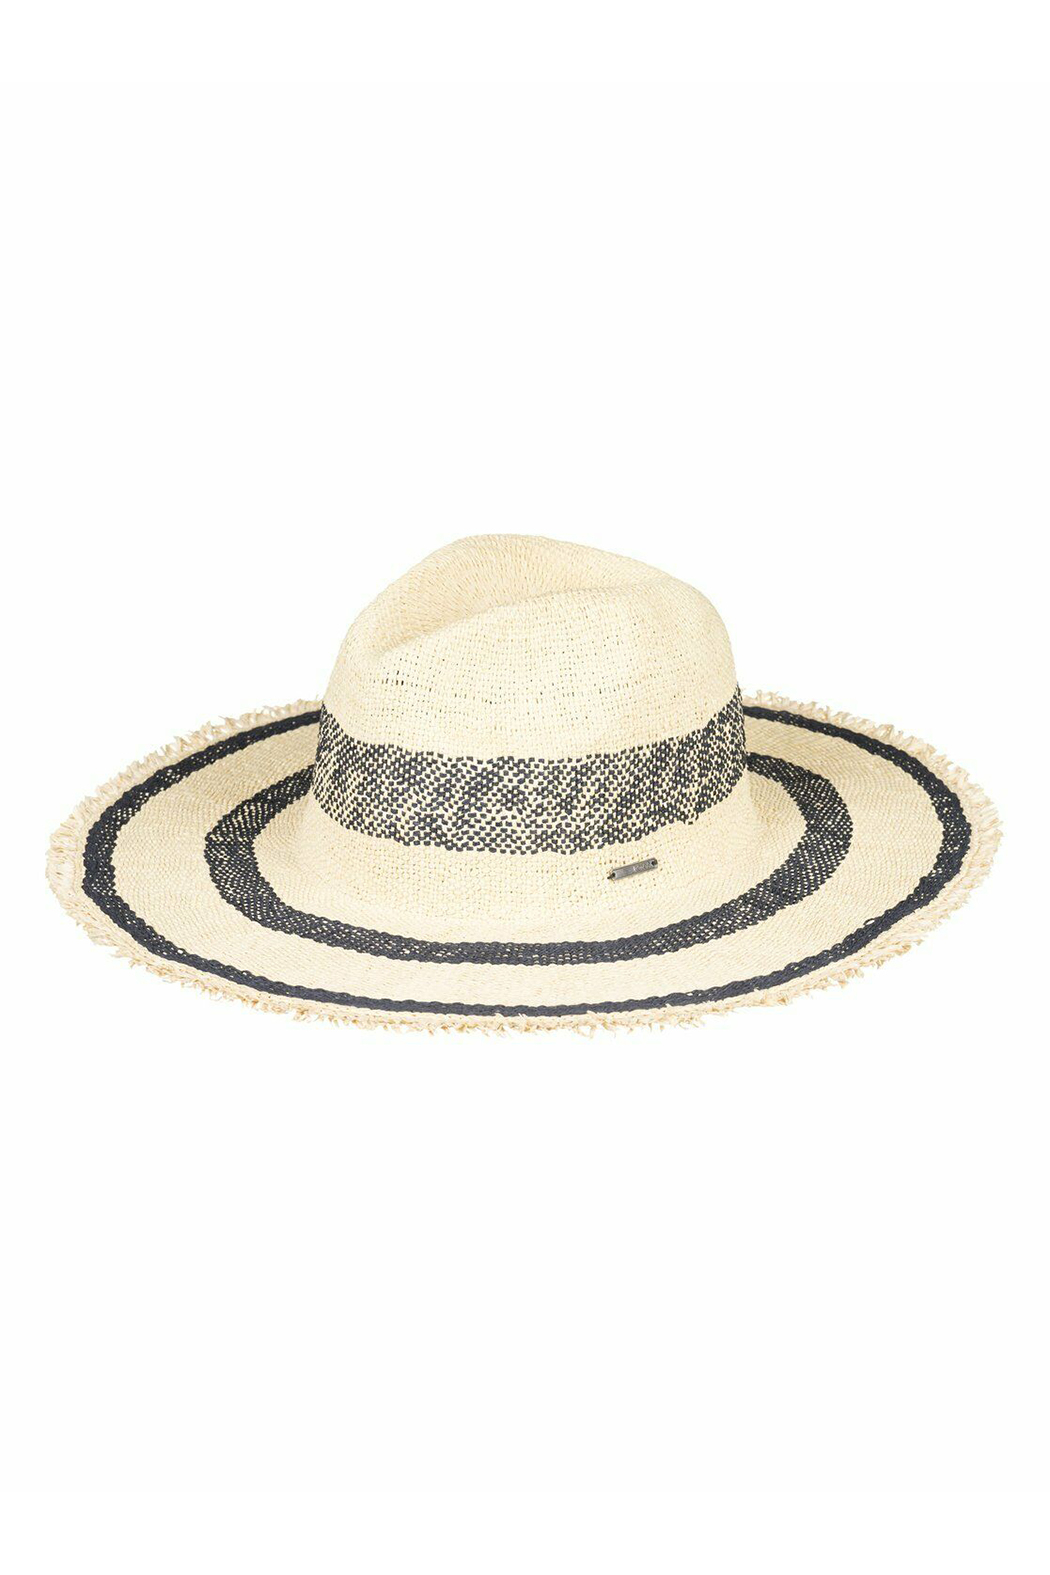 Roxy Sound of the Ocean Straw Hat - Main Image